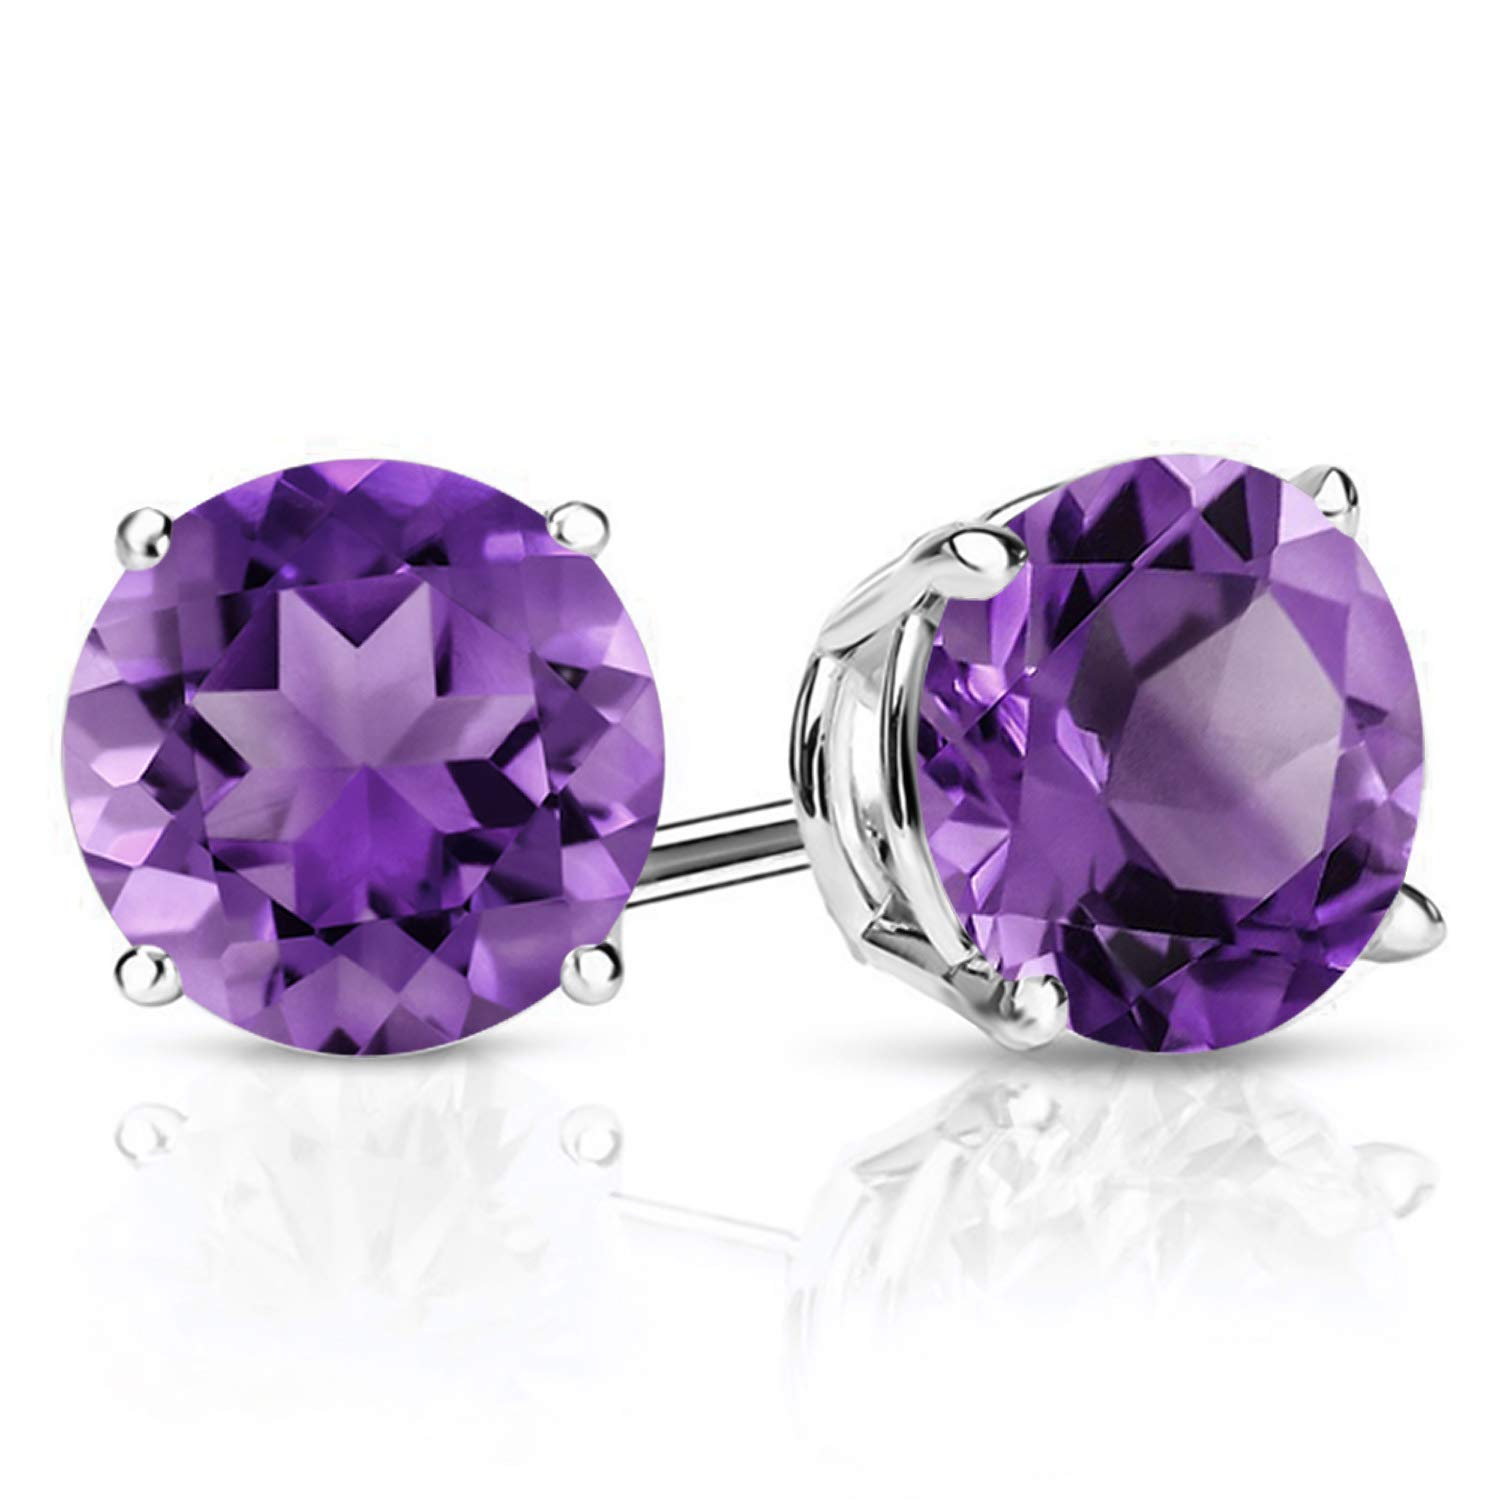 Gem Stone King 925 Sterling Silver Purple Amethyst Gemstone Birthstone Stud Earrings, 2.60 Ctw Round 7MM by Gem Stone King